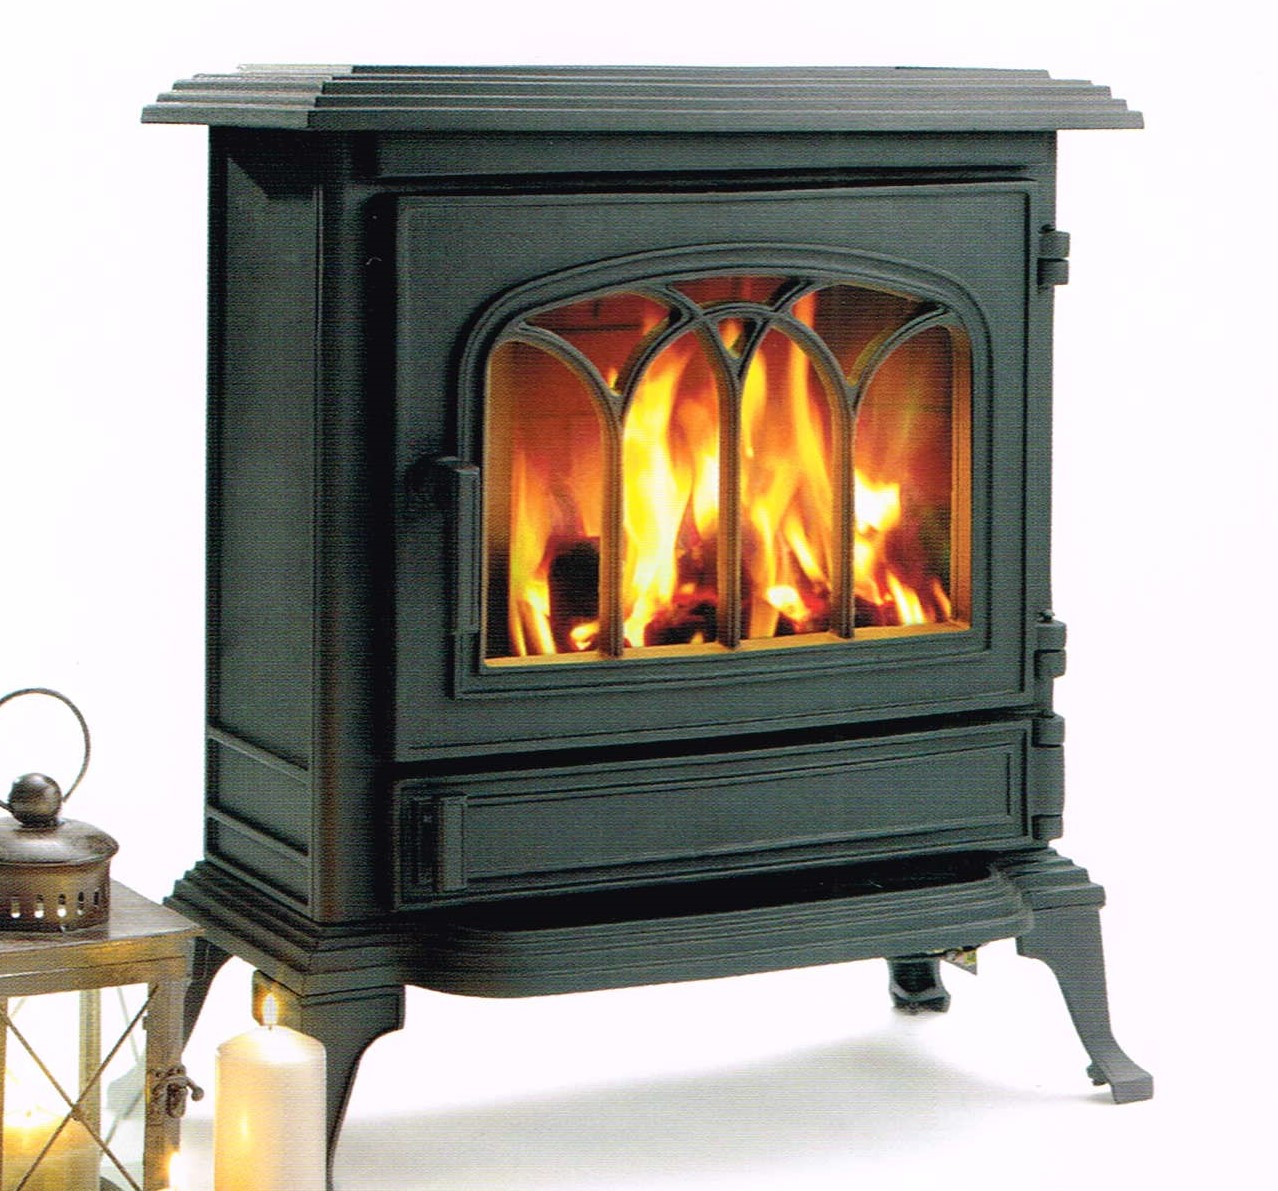 GAS STOVE CANTERBURY GAS STOVE